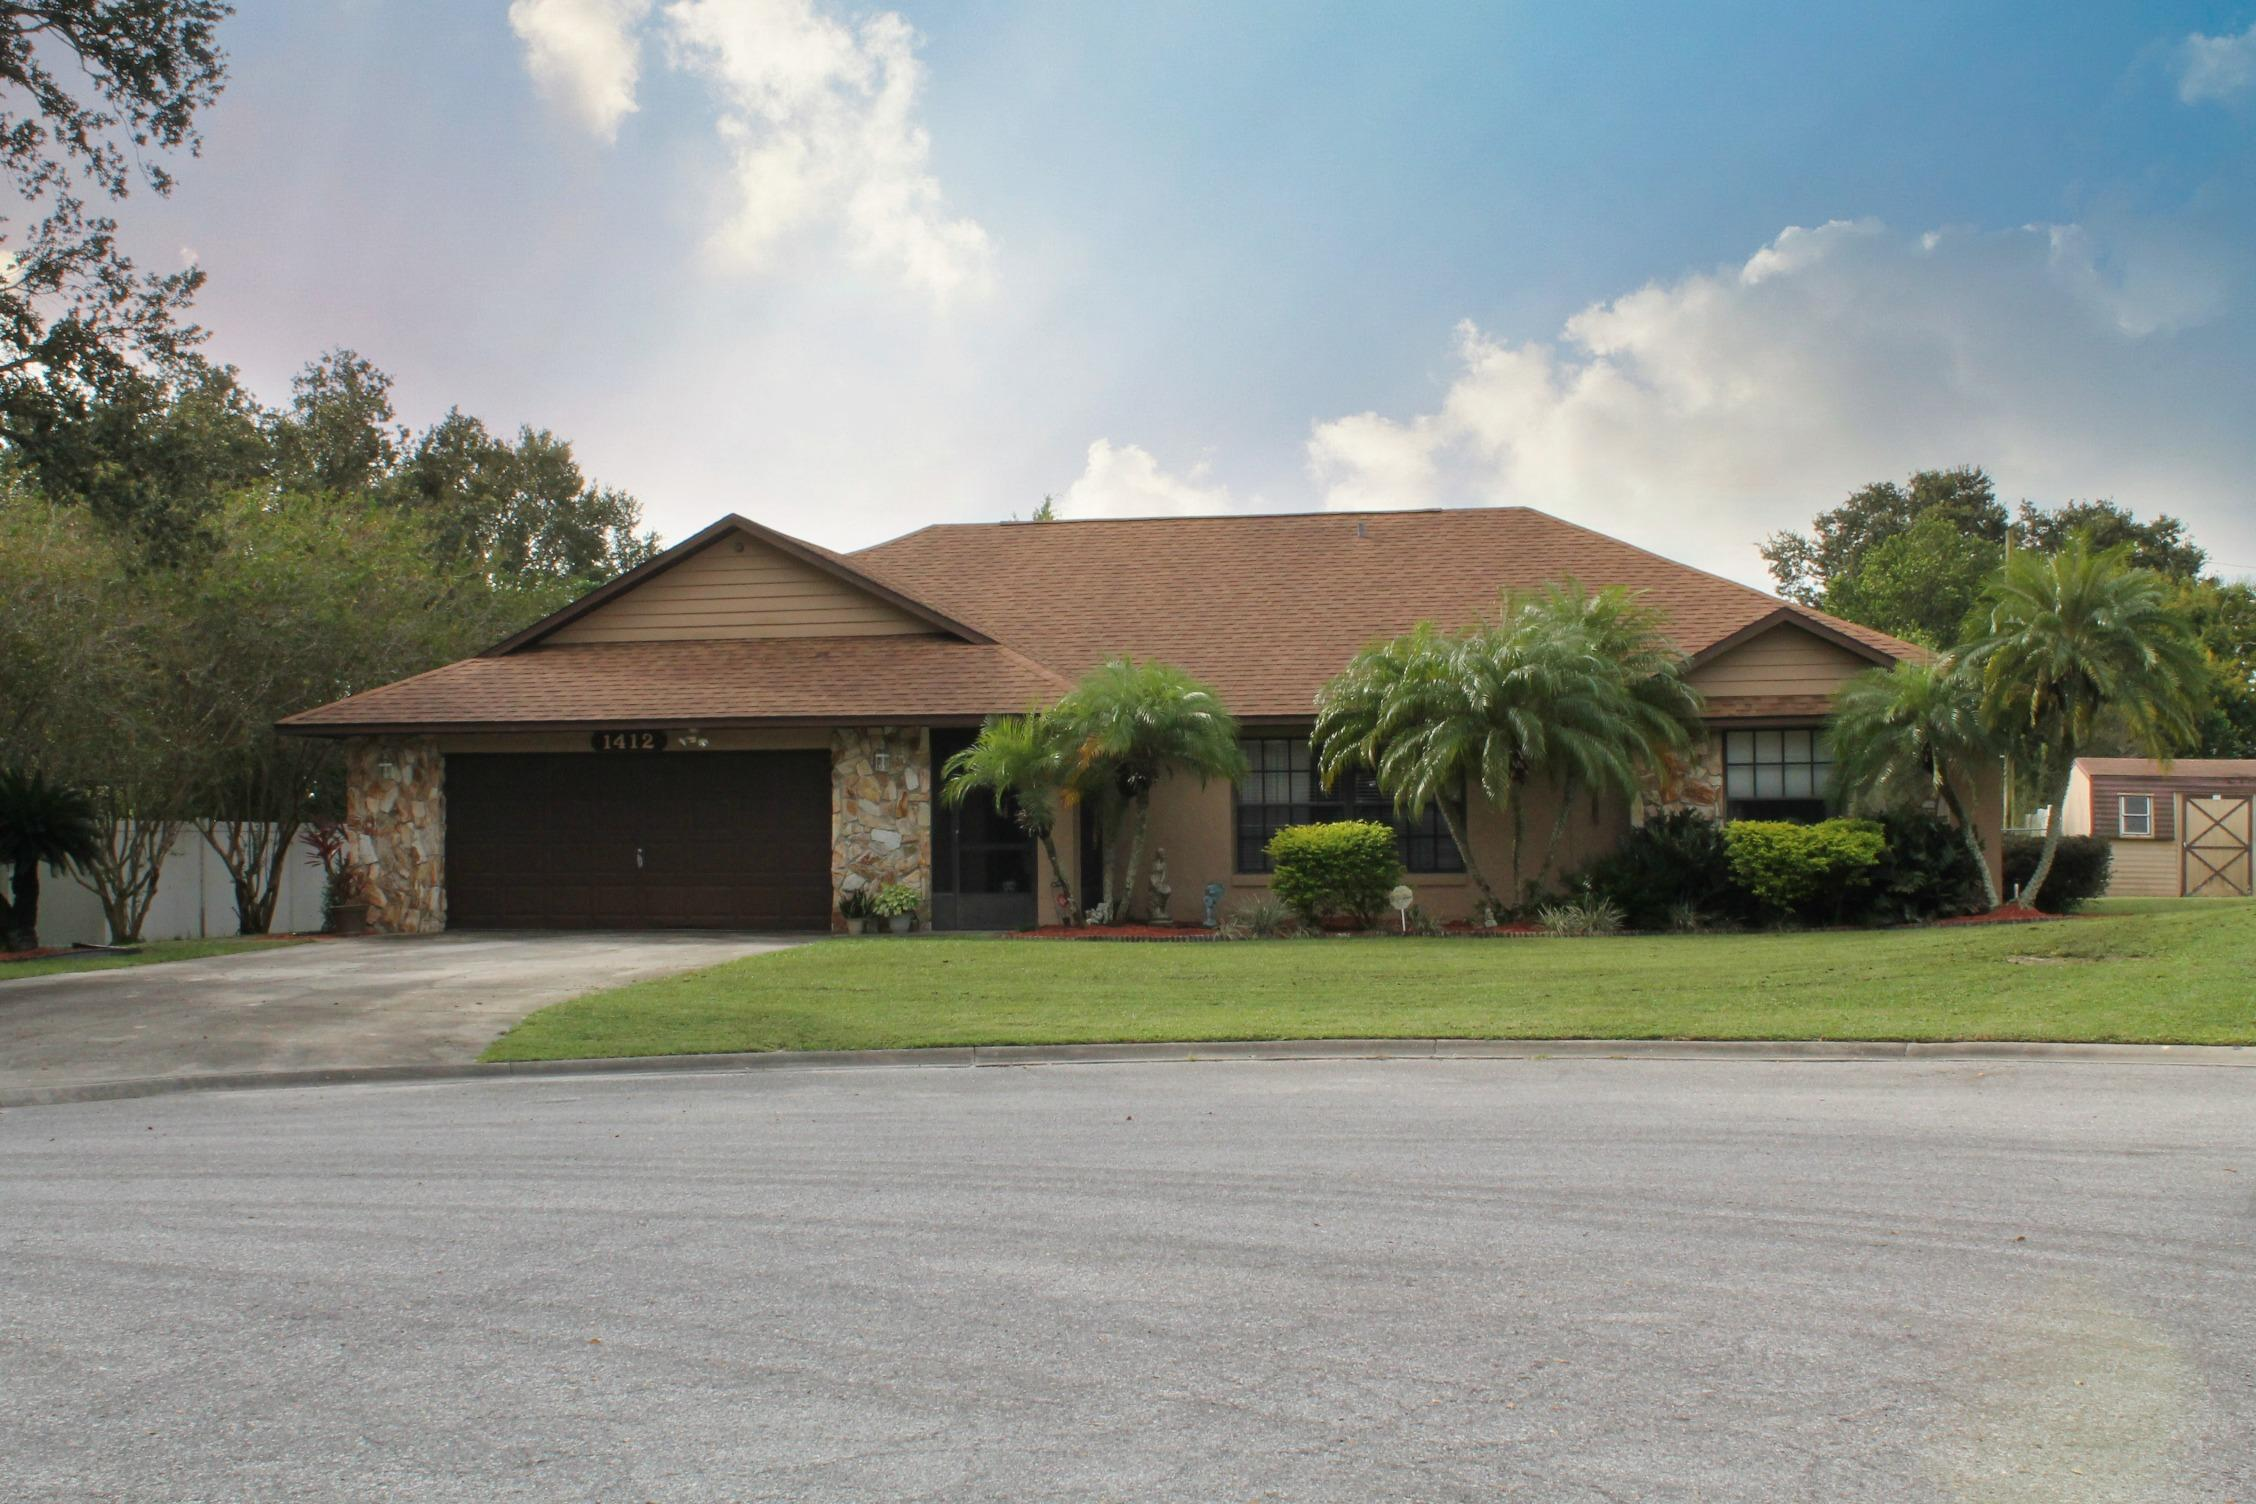 Property Image for 1412 Covington Ct